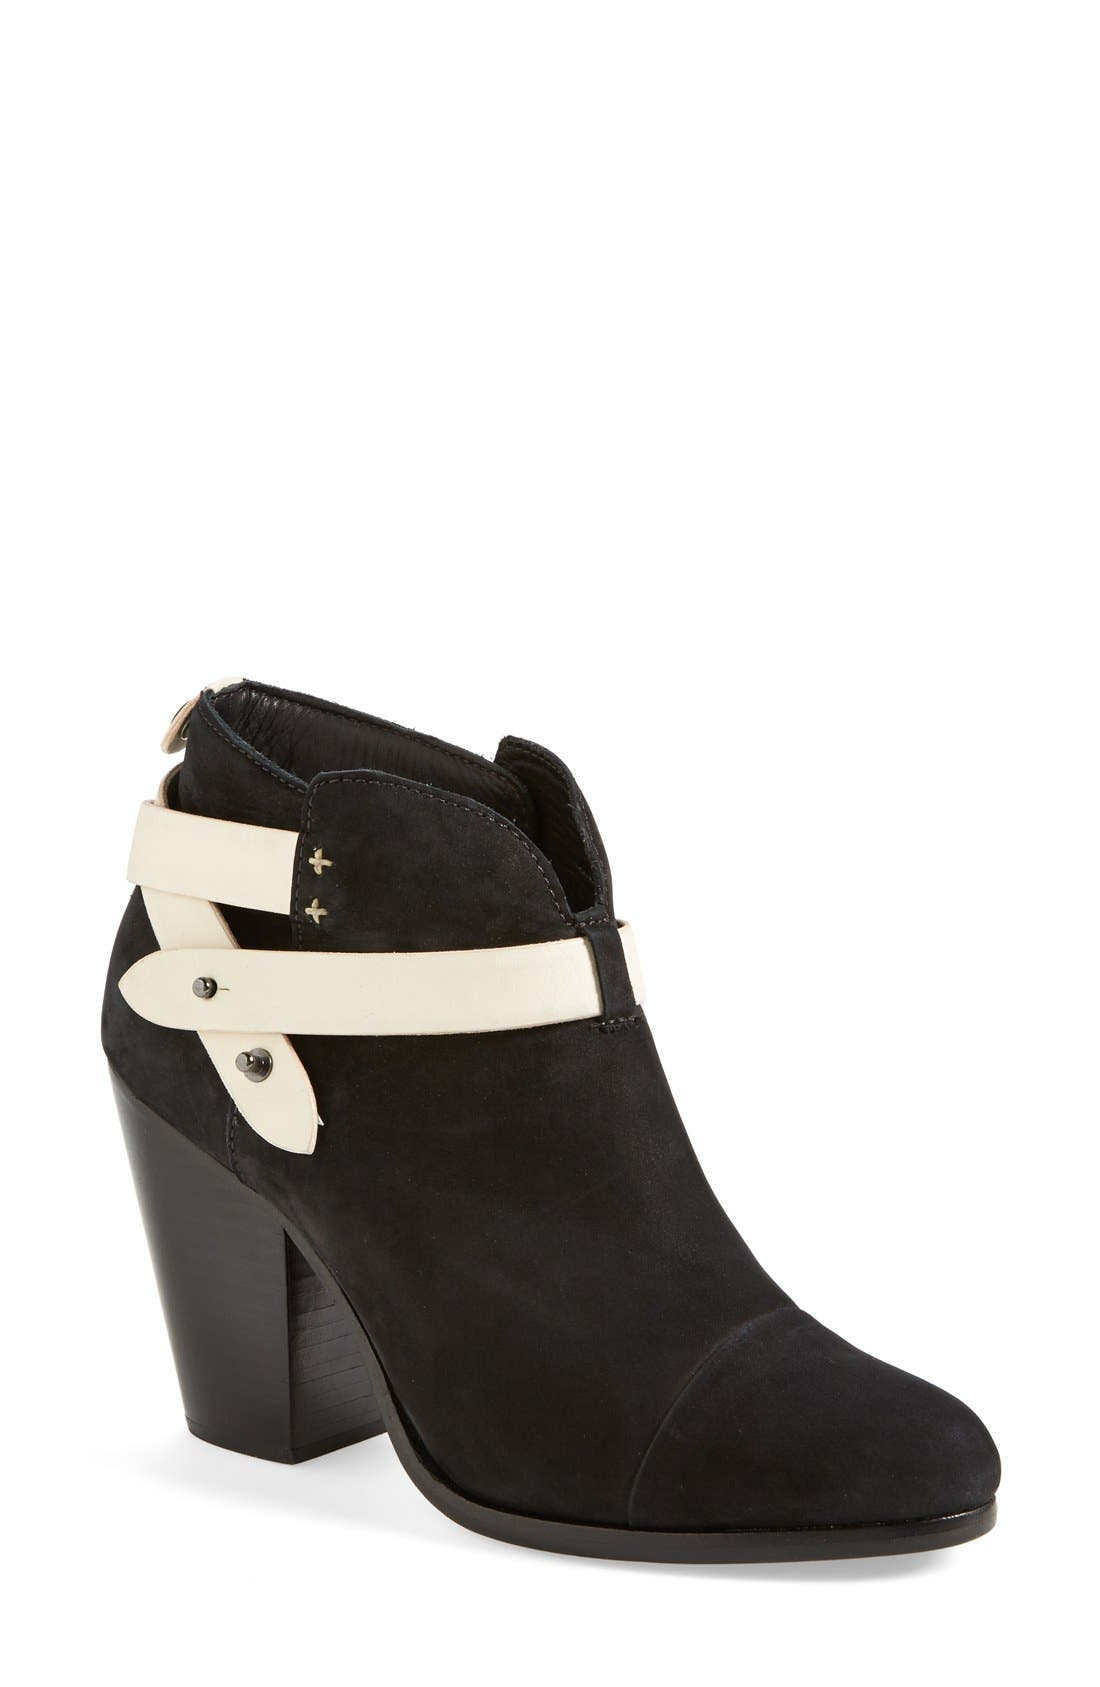 Alternate Image 1 Selected - rag & bone 'Harrow' Bootie (Women)